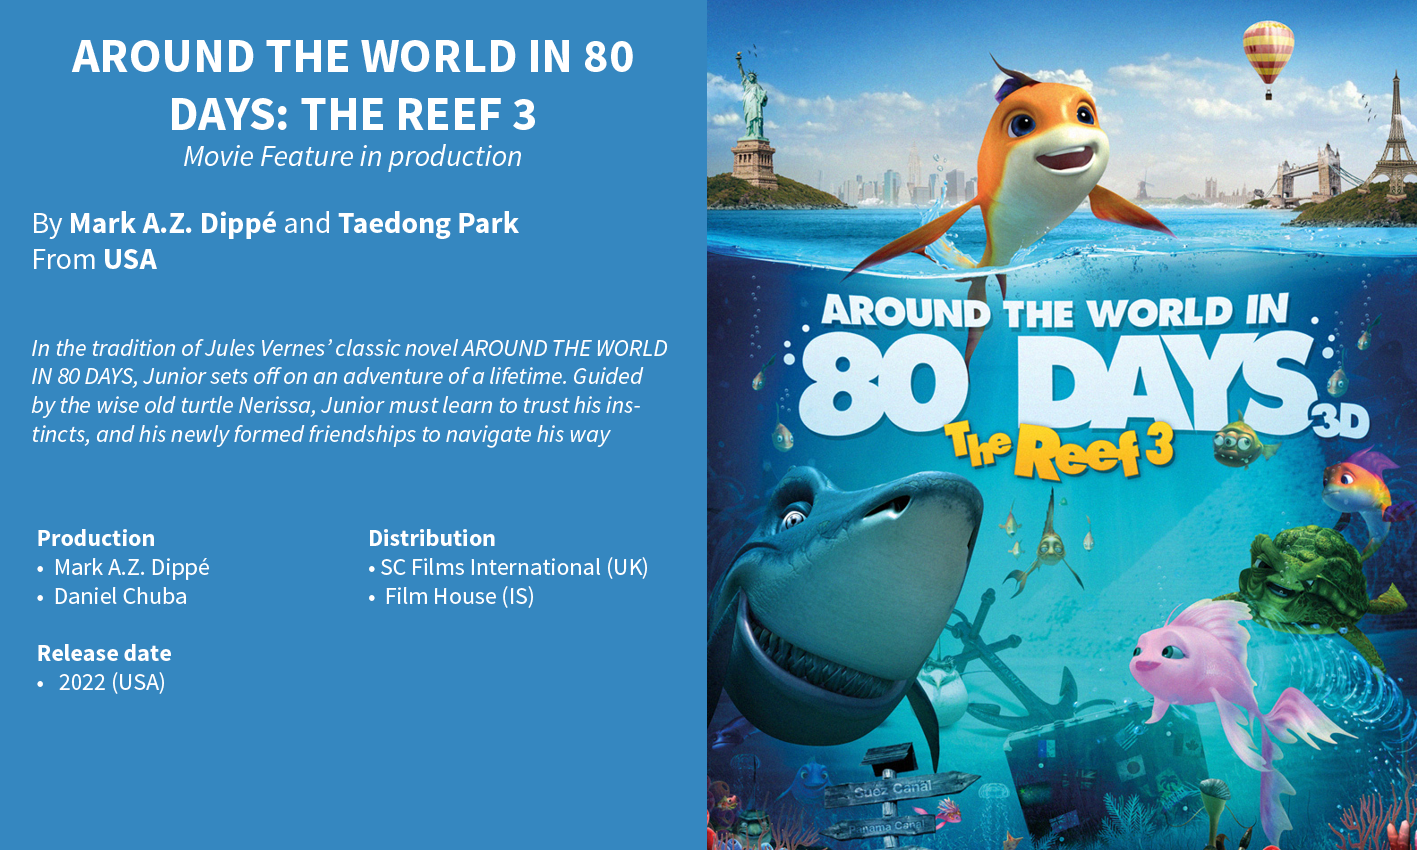 Around the World in 80 days: The Reef 3